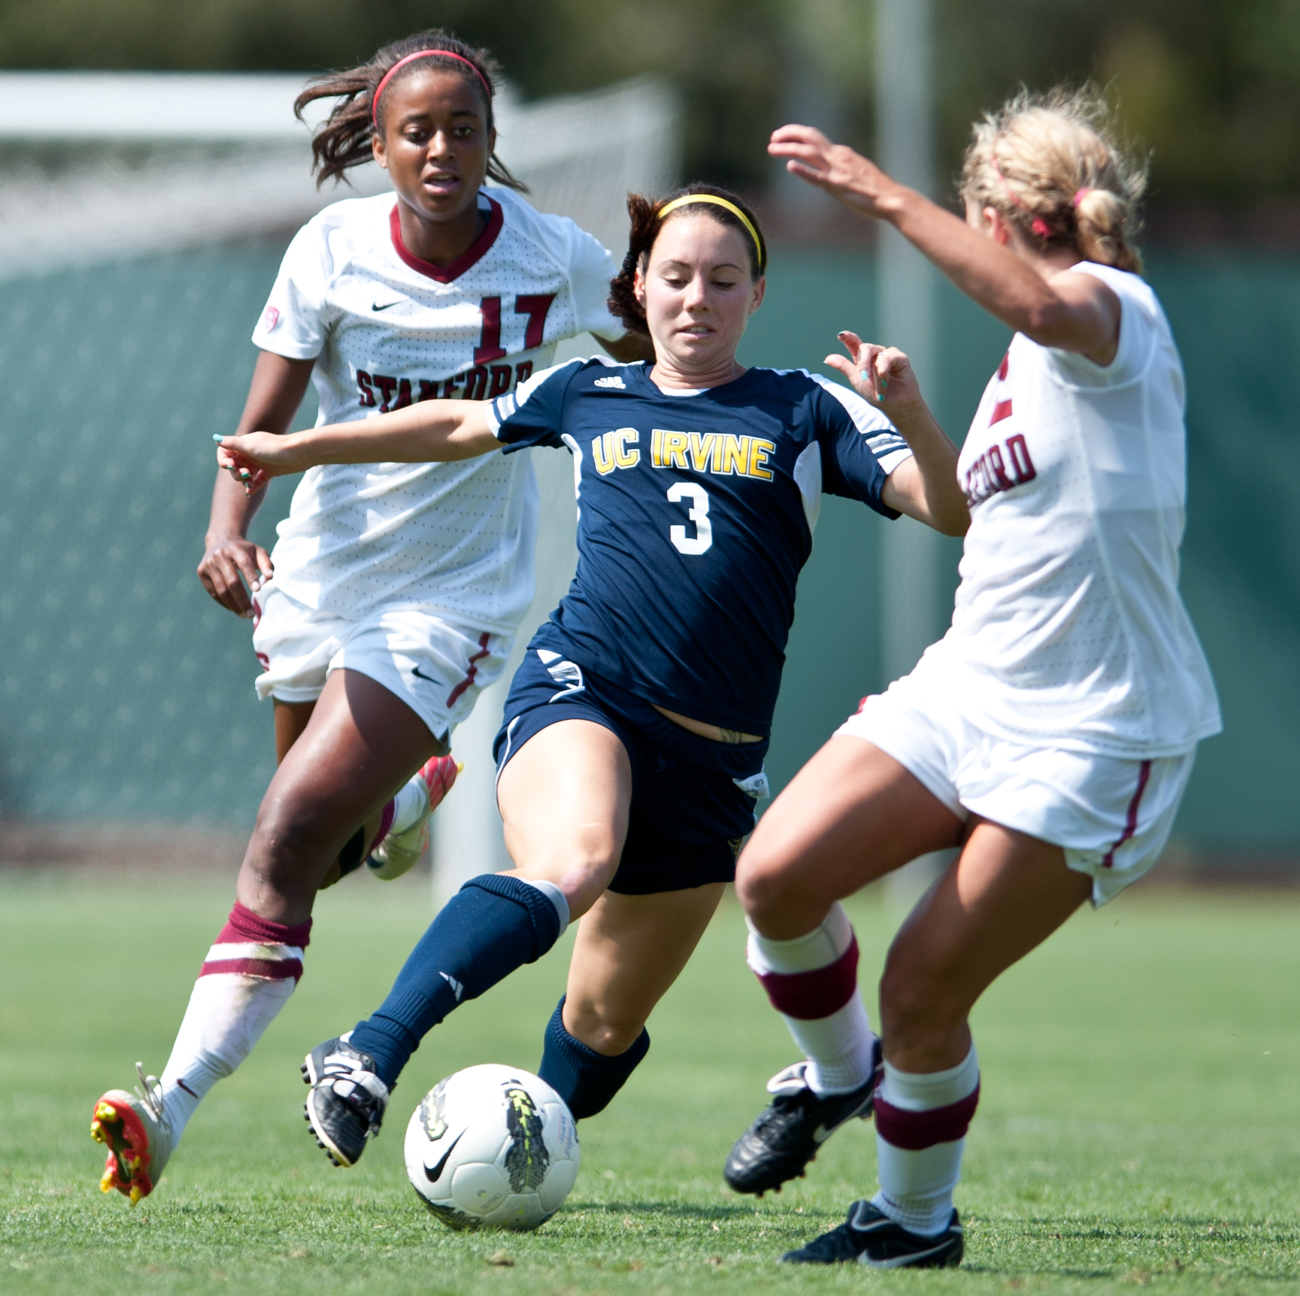 09-11-11_Womens_Soccer_ICO_Stanford_Roeder_106